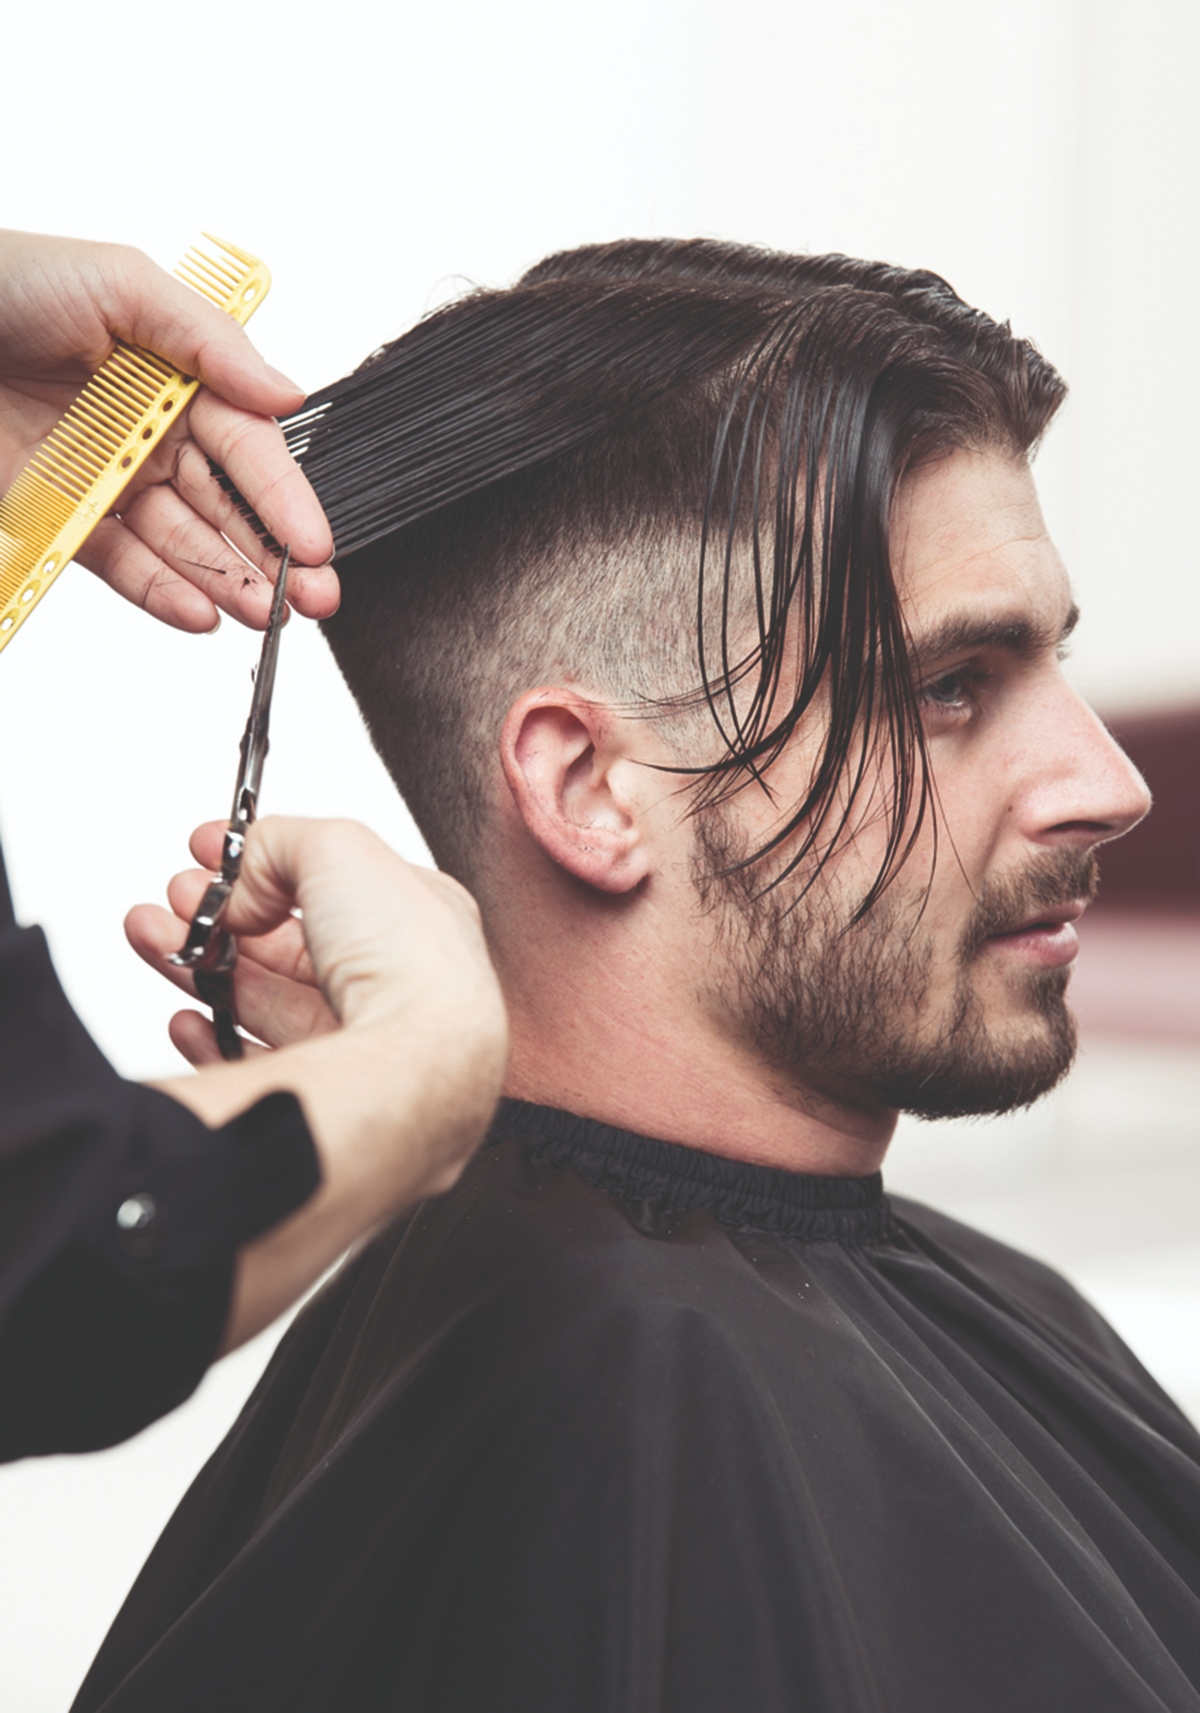 stella_trend_2019_barber_step10